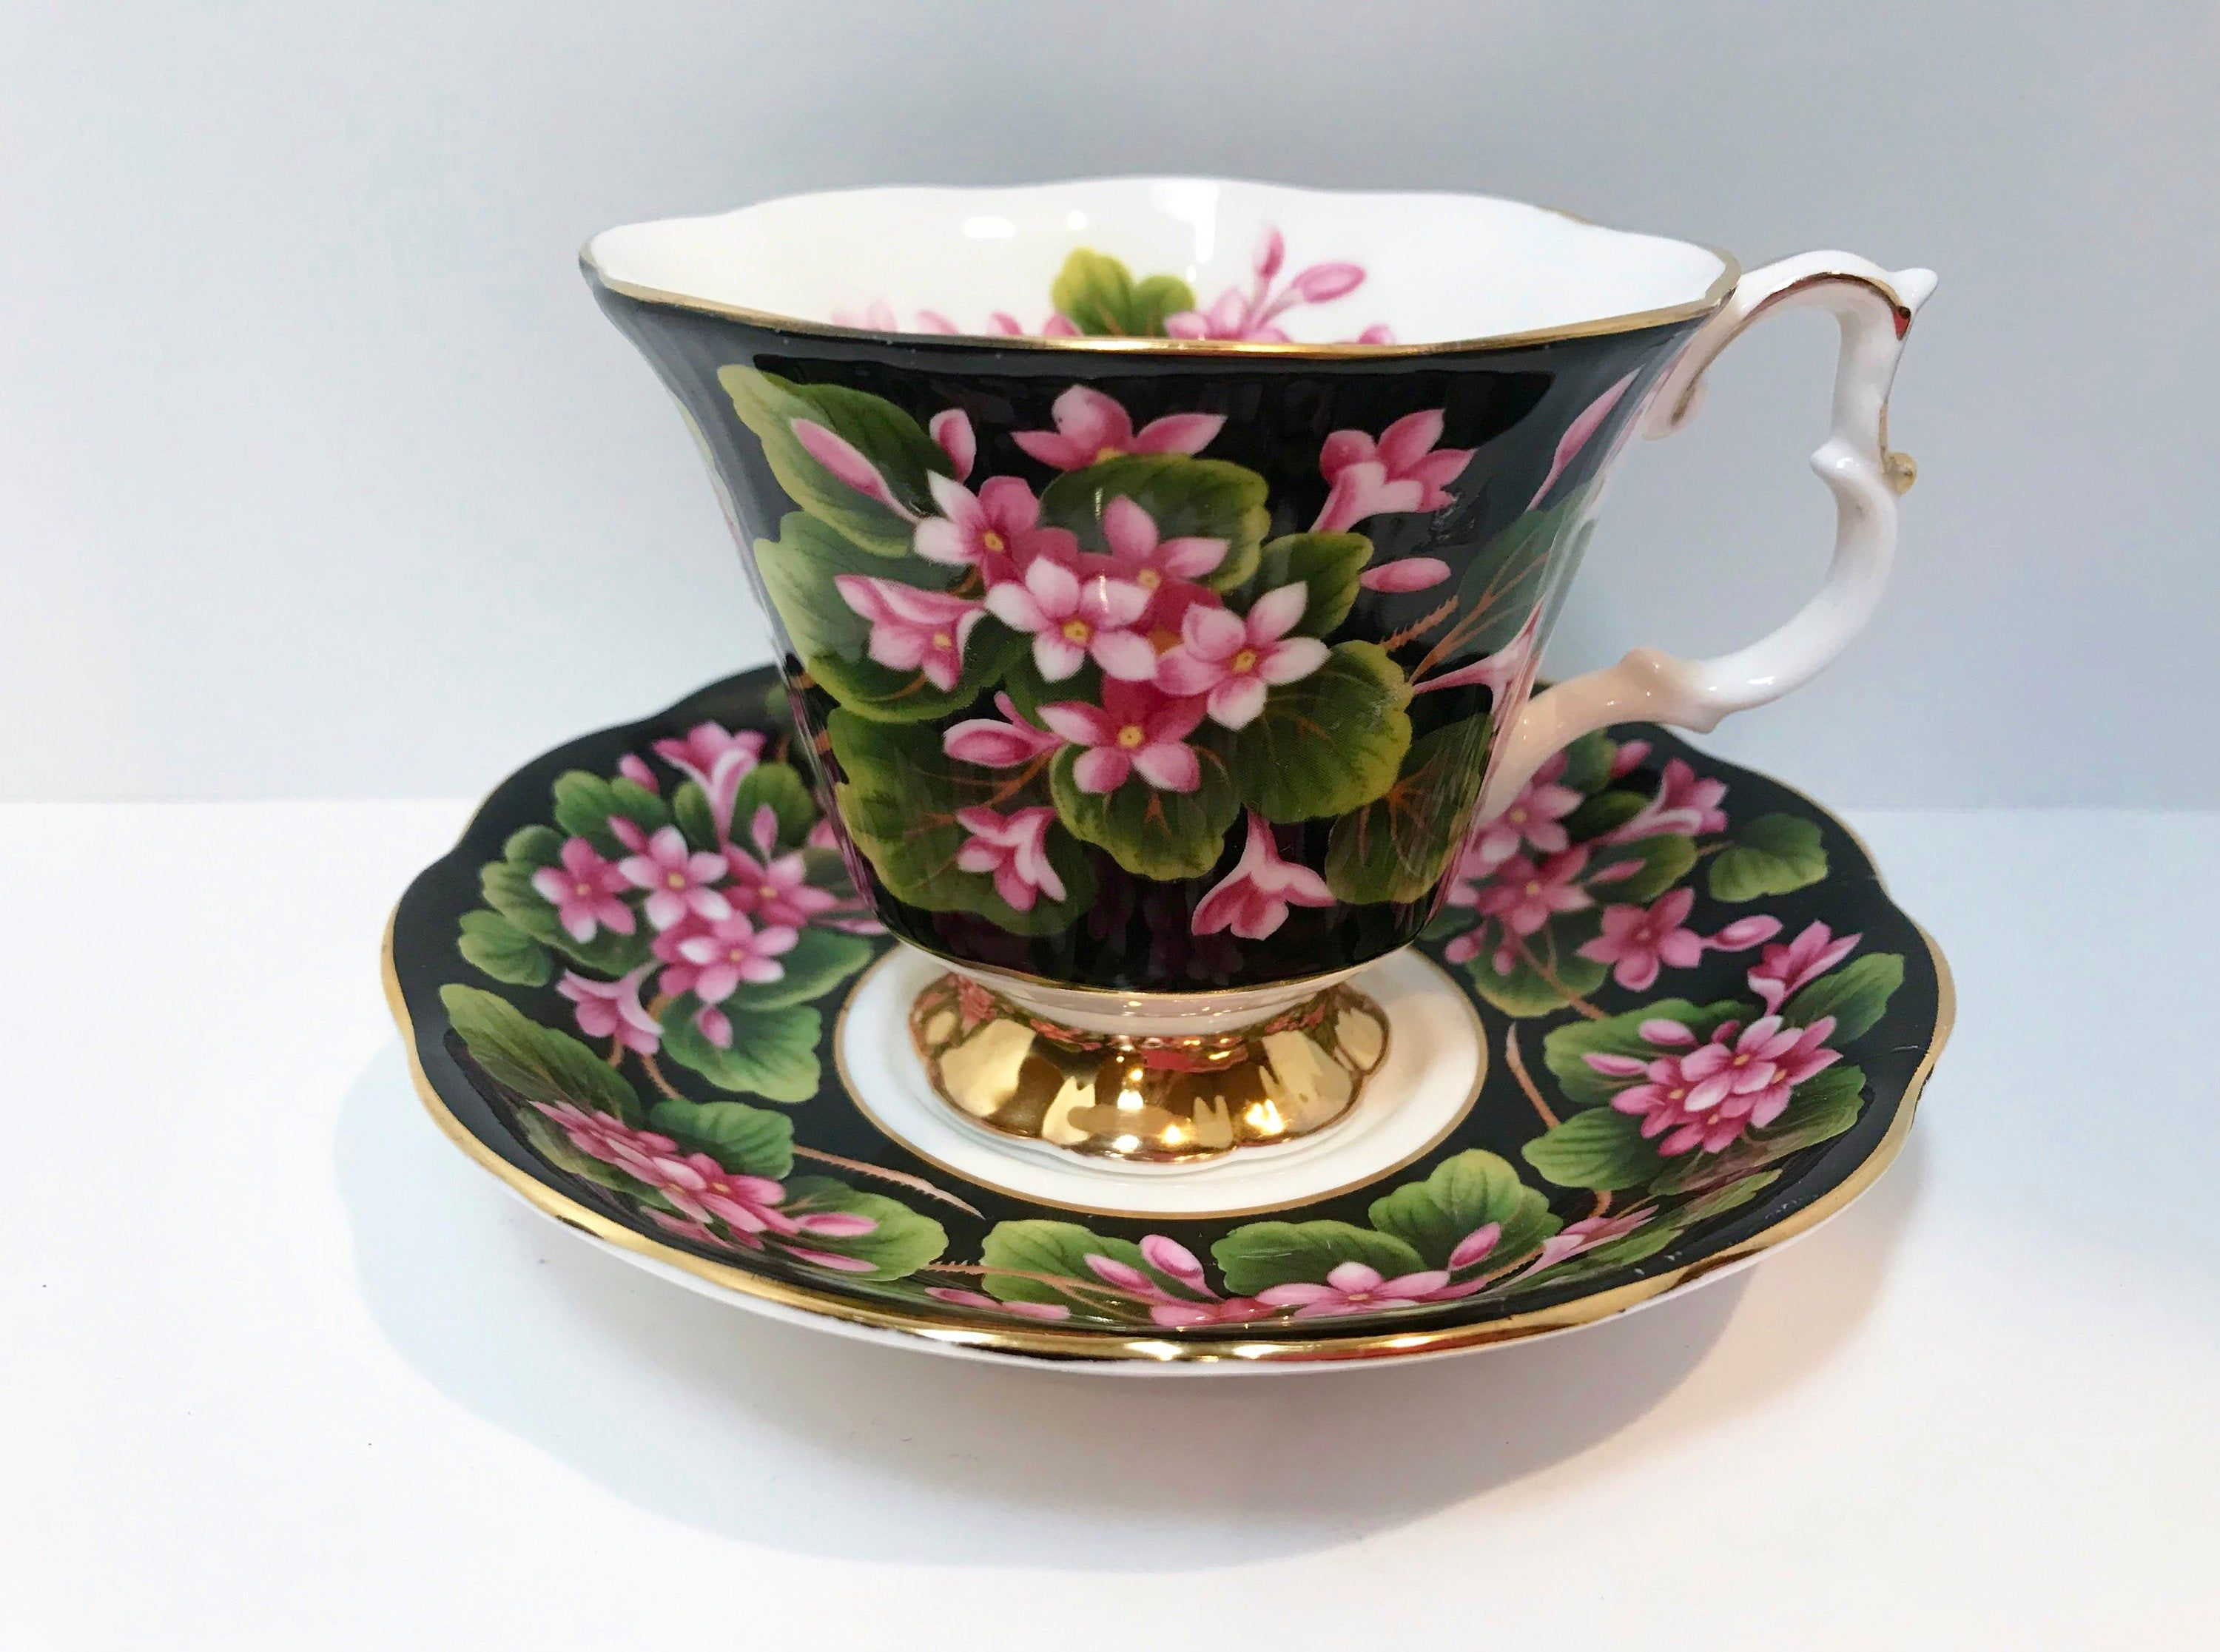 Mayflower Pattern by Royal Albert Tea Cup and Saucer, Provincial Flowers Series, Antique Teacups Vintage, Black Floral Tea Cups Vintage #teacups